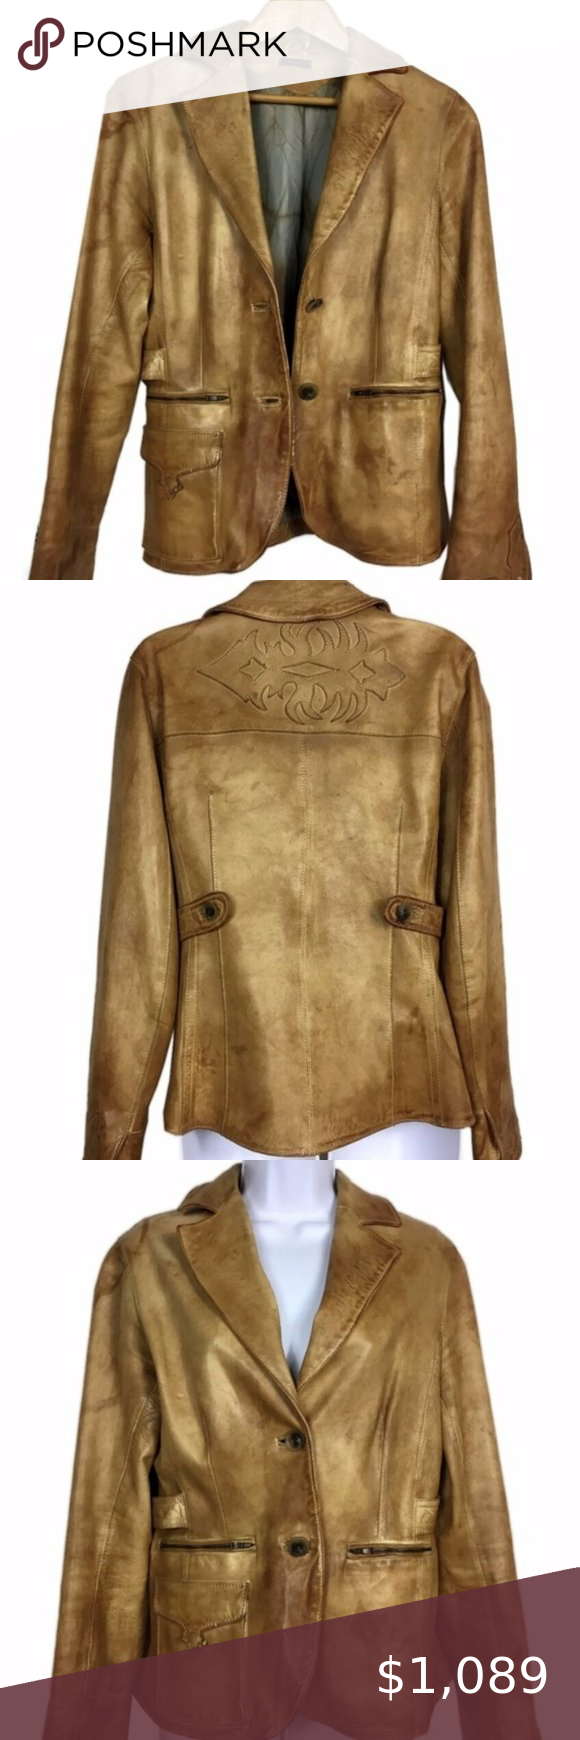 Blur Brown Cubalibre Italian Leather Jacket Size S in 2020